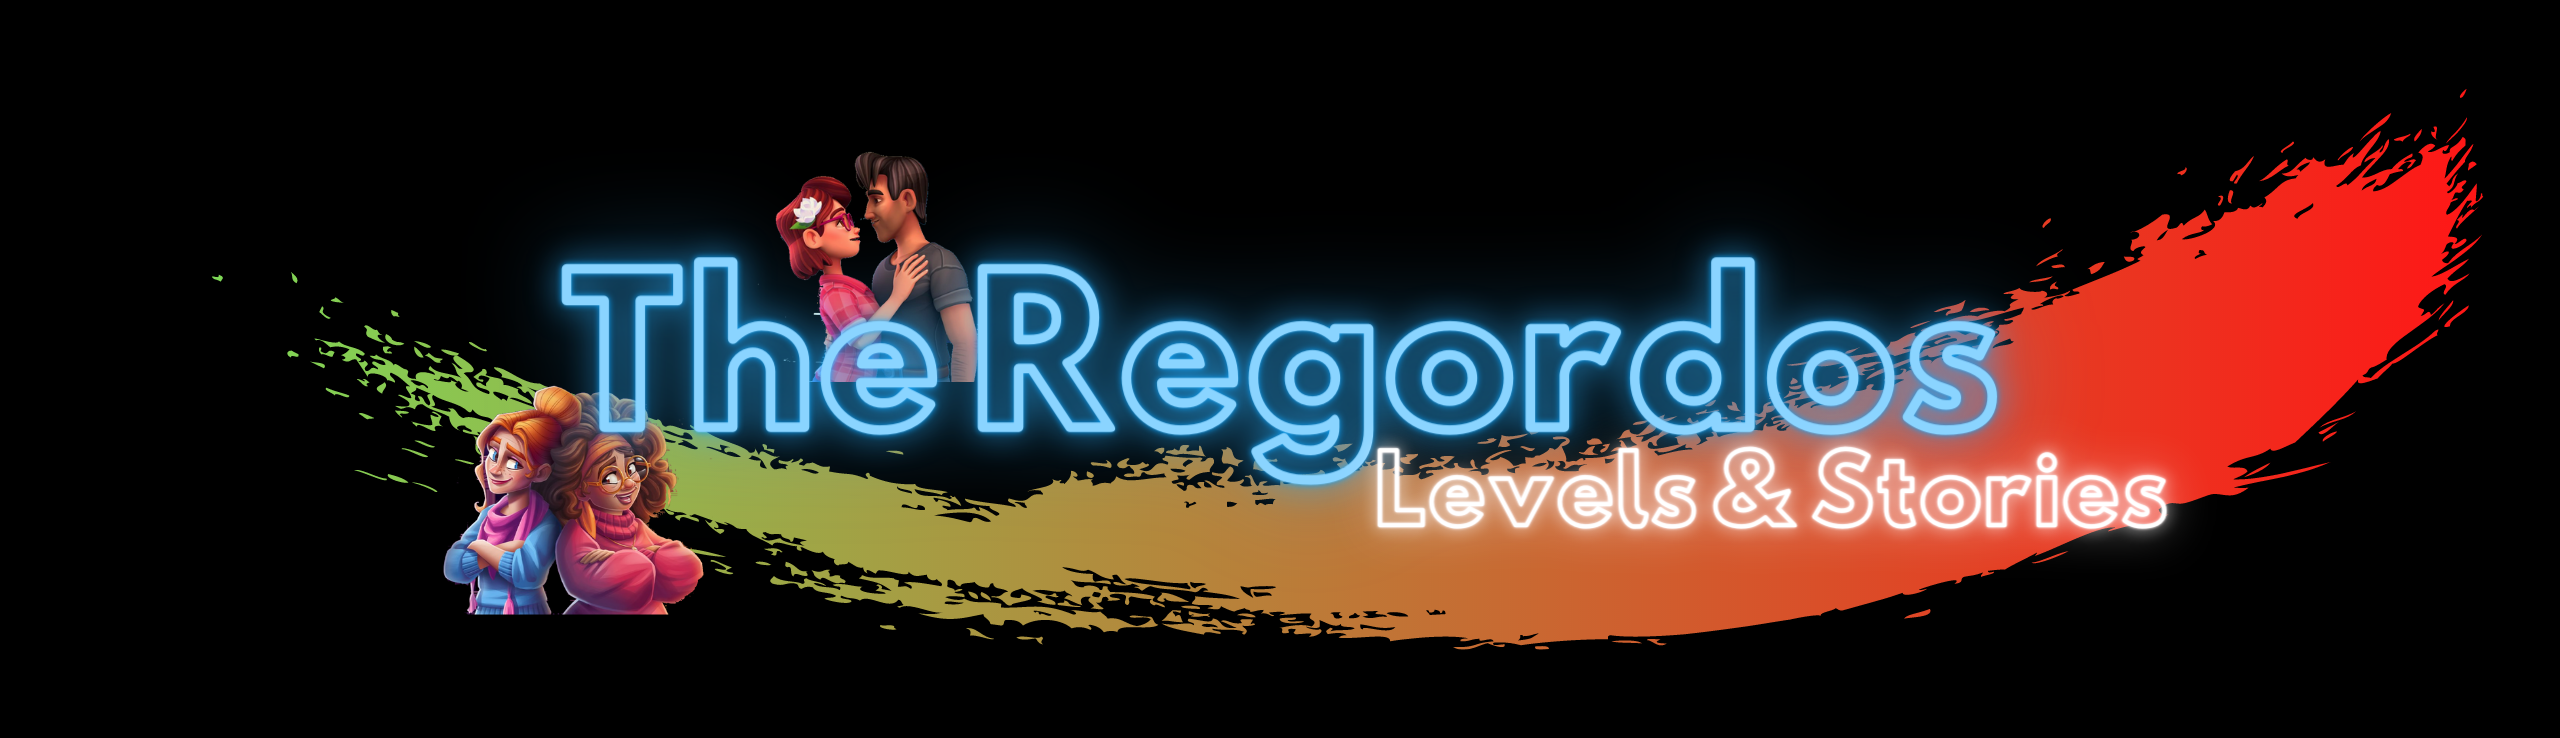 The Regordos Games